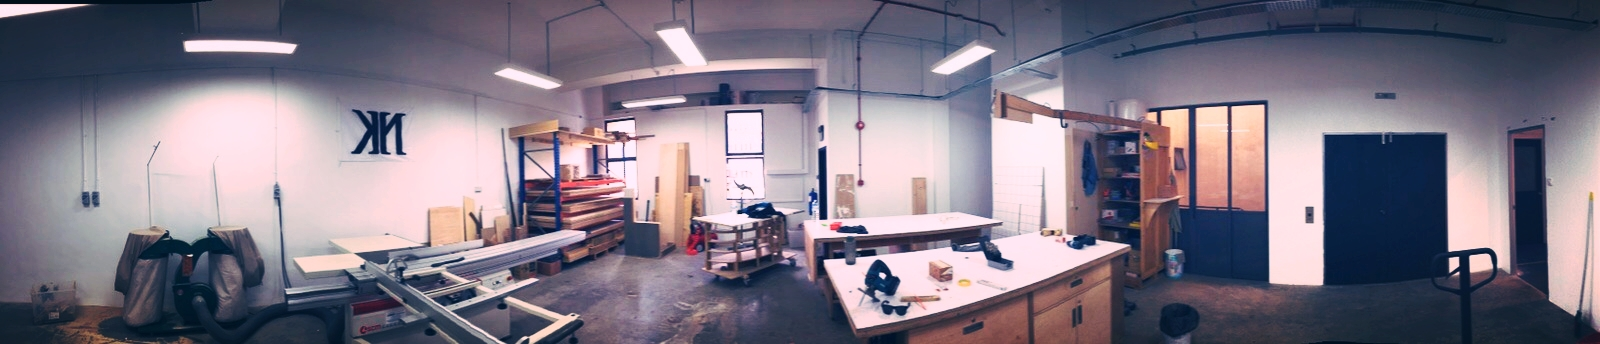 Our completed new workshop.